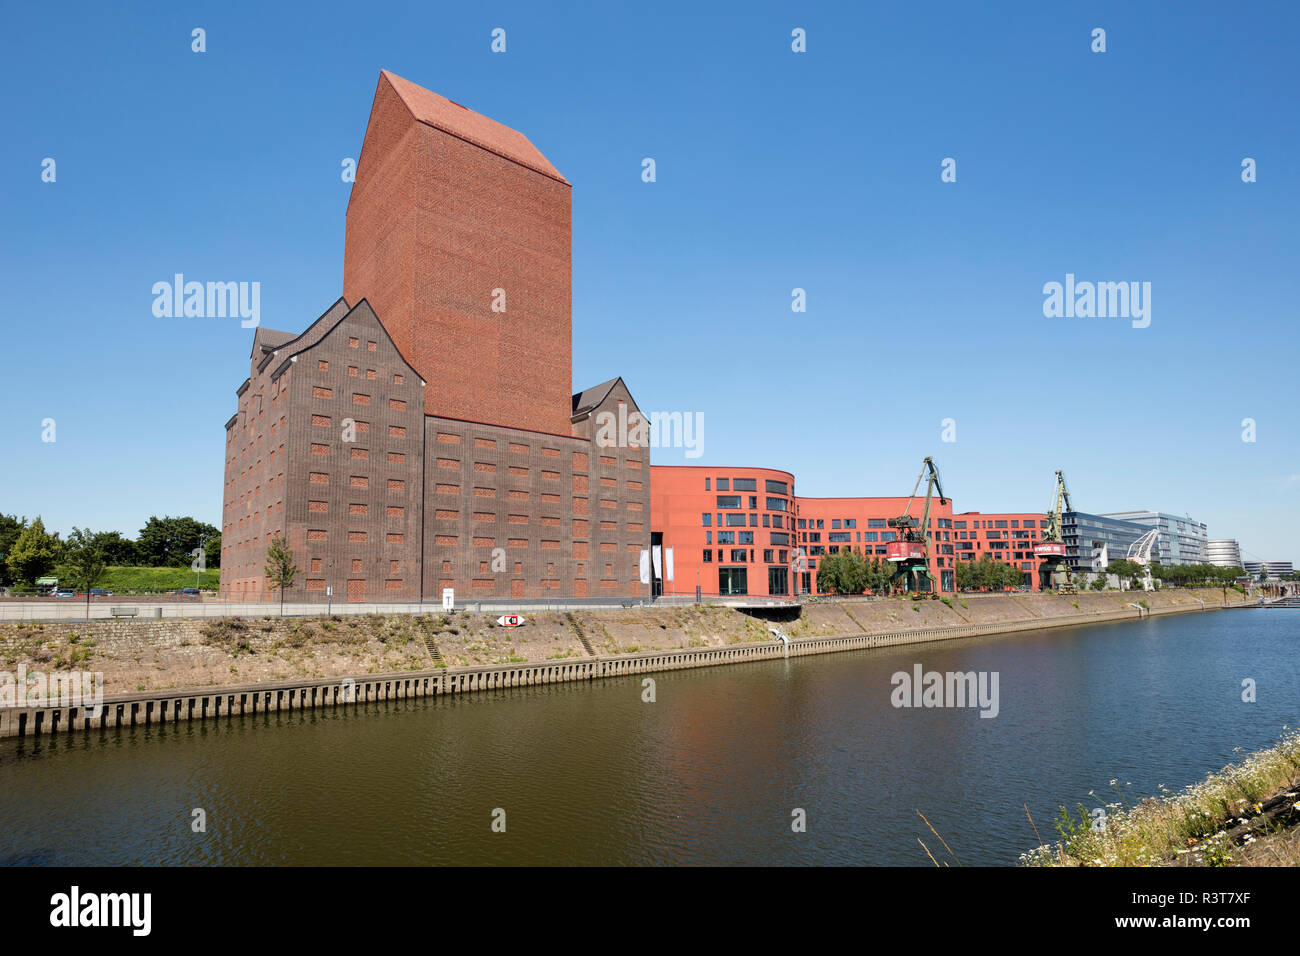 Germany, Duisburg, view to Landesarchiv with office buildings - Stock Image